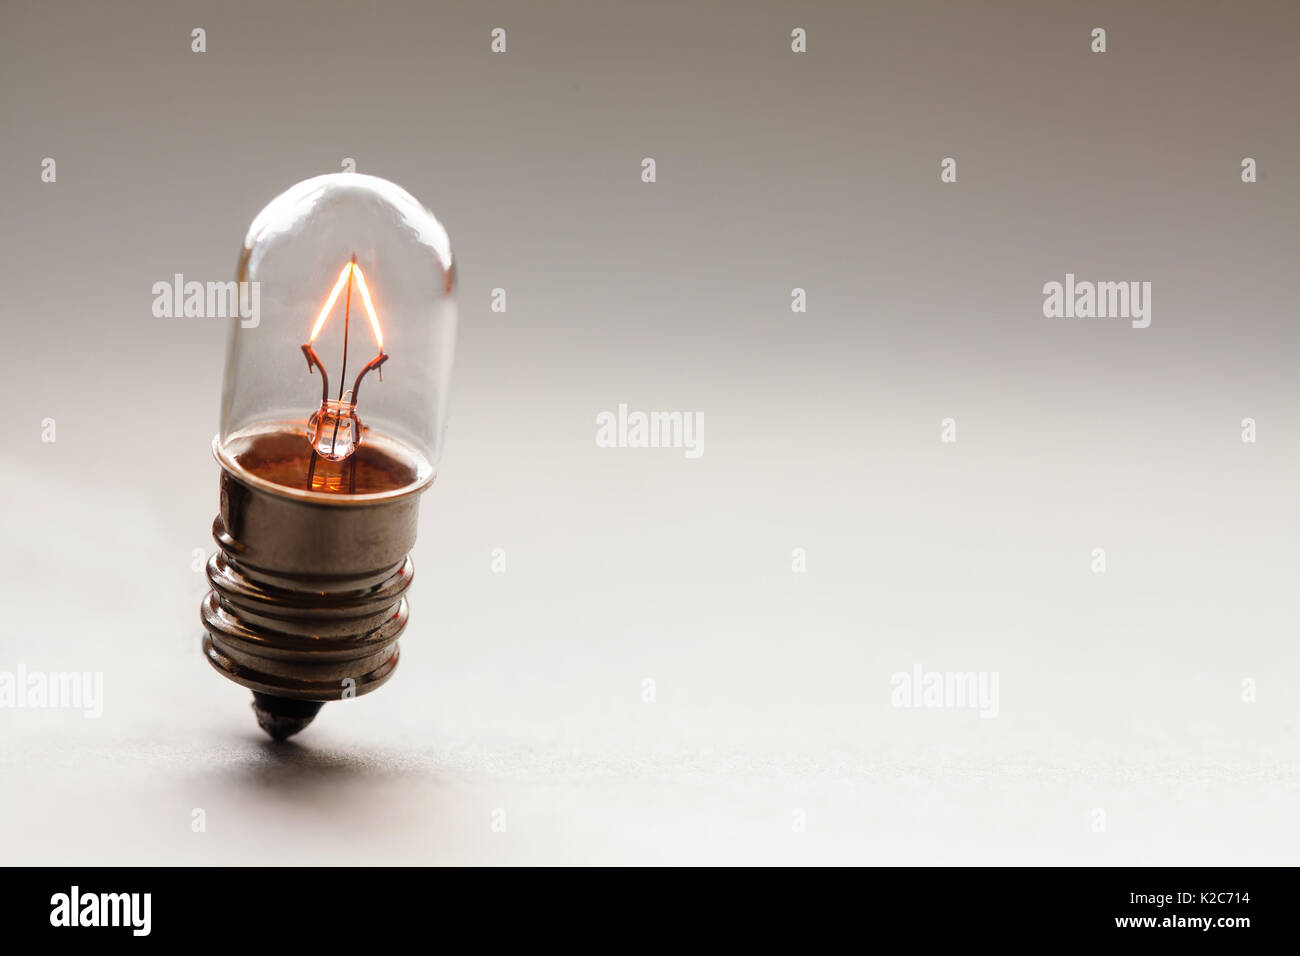 Glowing light bulb, Retro style filament lamp macro view. Warm colors gradient background. Soft focus. Copy space - Stock Image